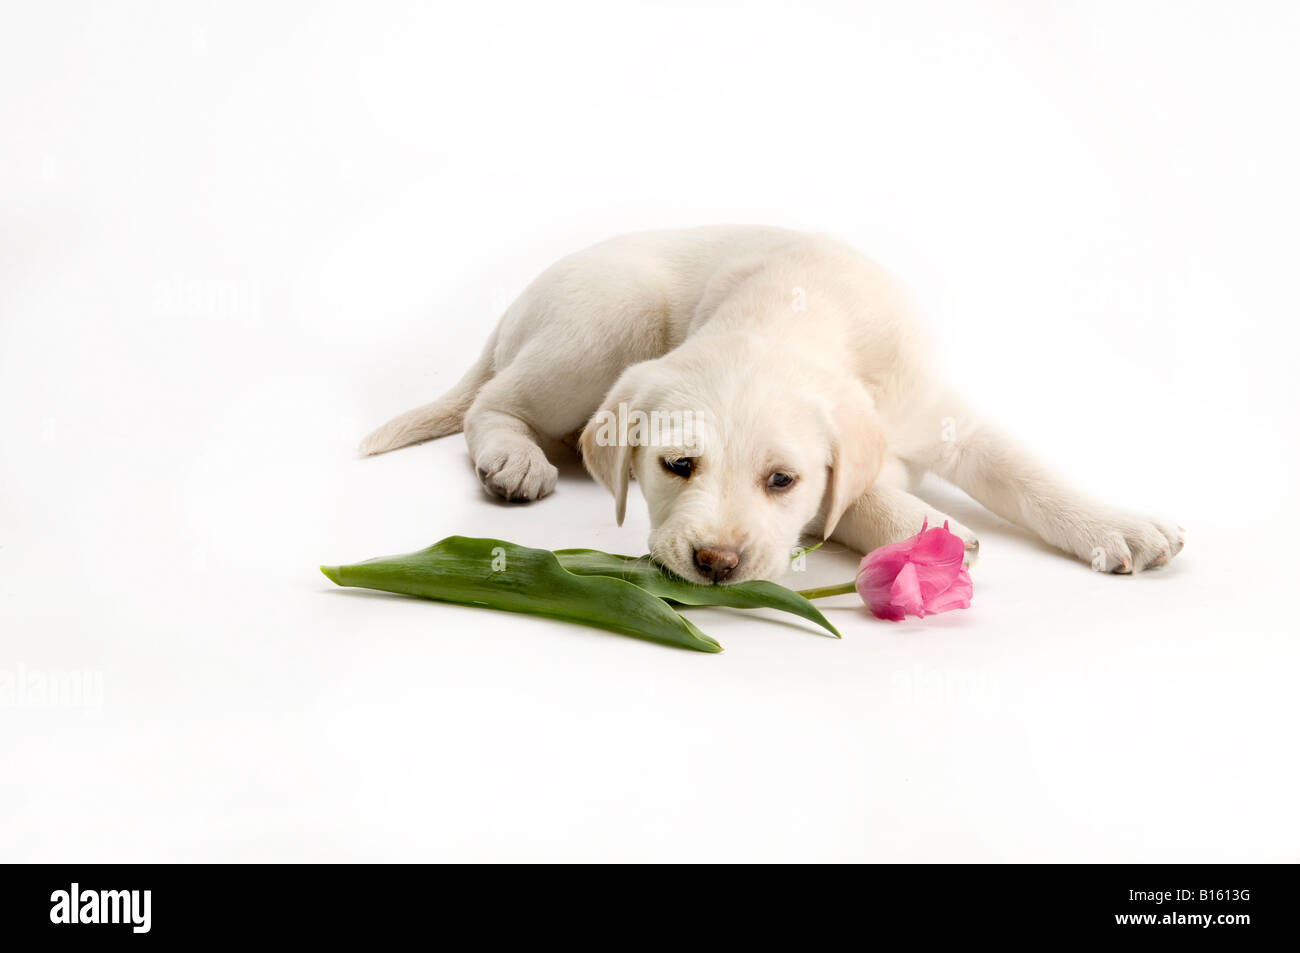 lab puppy chewing a  pink tulip flower - Stock Image